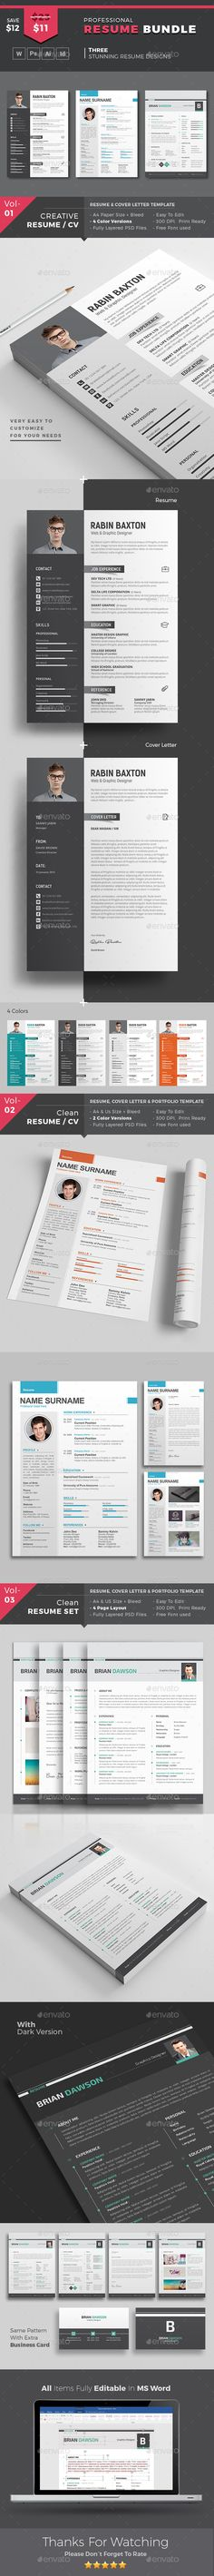 free psd resume and cover letter templates freebies template - free business stationery templates for word